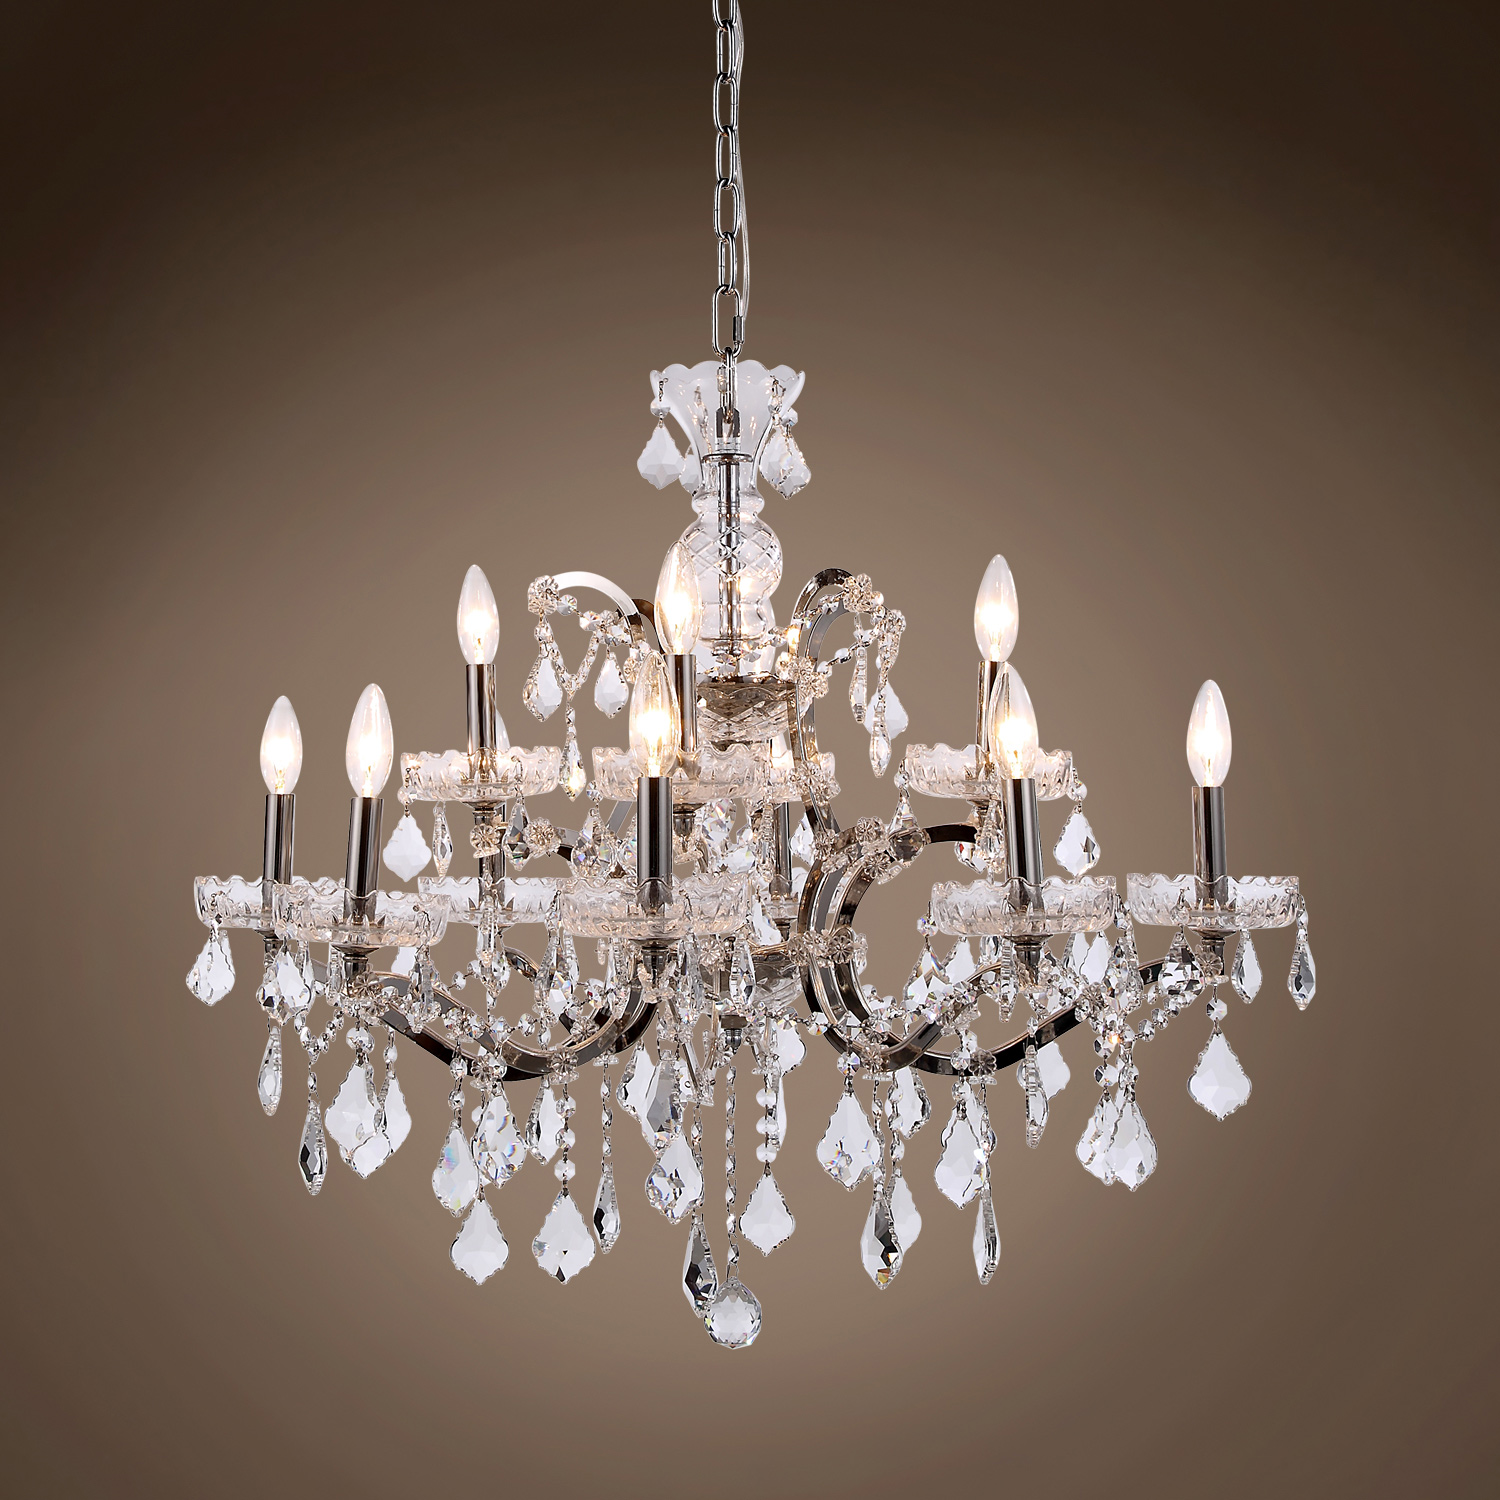 with p versailles black chandelier iron and the chandeliers crystal light